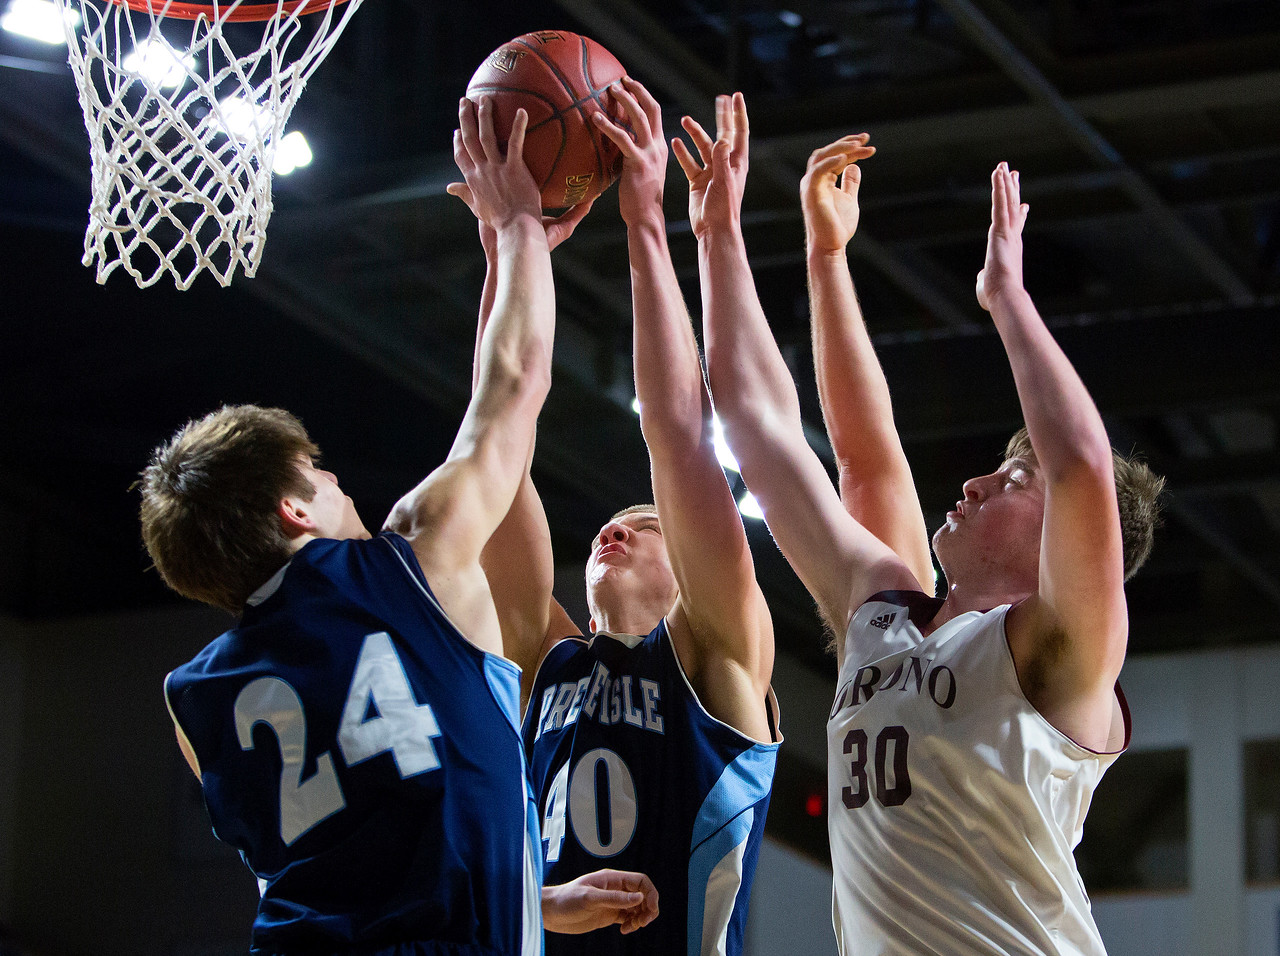 BANGOR, Maine -- 02/18/2017 -- Presque Isle's Jacob J. Kinney (left) and teammate Presque Isle's Bradley R. Kinney (center) battle for a rebound against Orono's Connor Robertson during their Class B boys basketball quarterfinal game at the Cross Insurance Center in Bangor Saturday. Ashley L. Conti | BDN